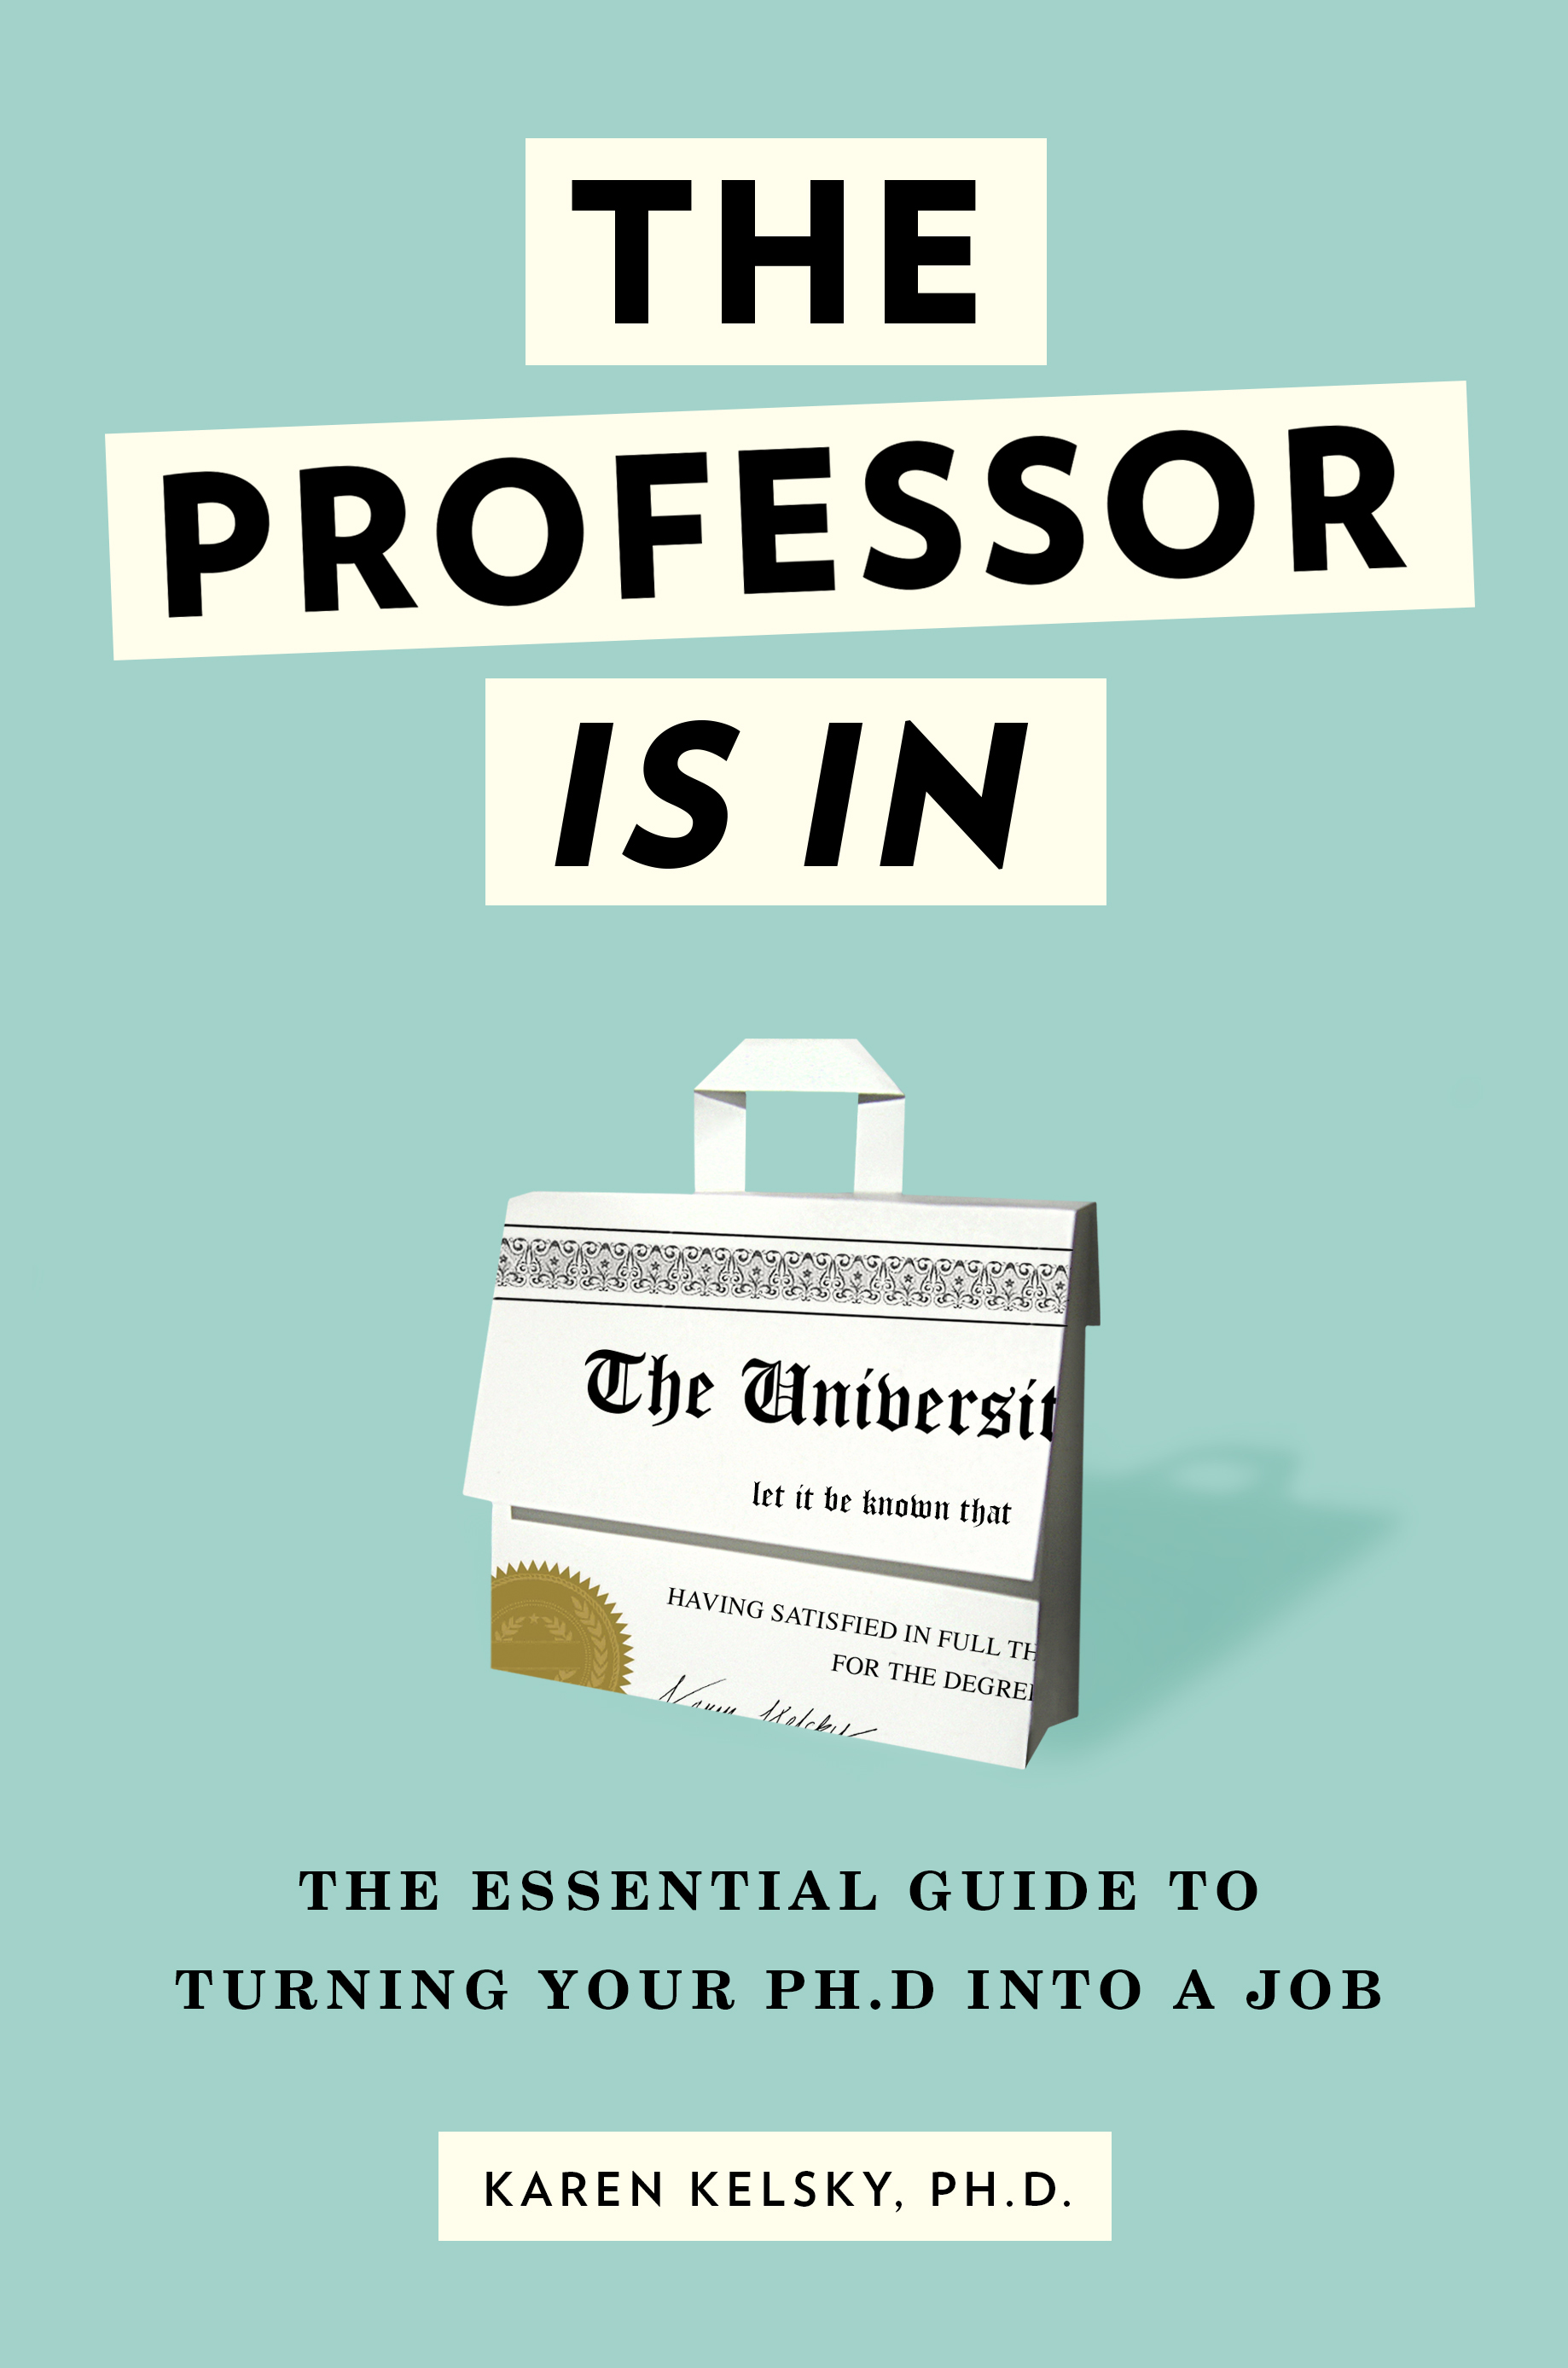 The_Professor_Is_In.indd